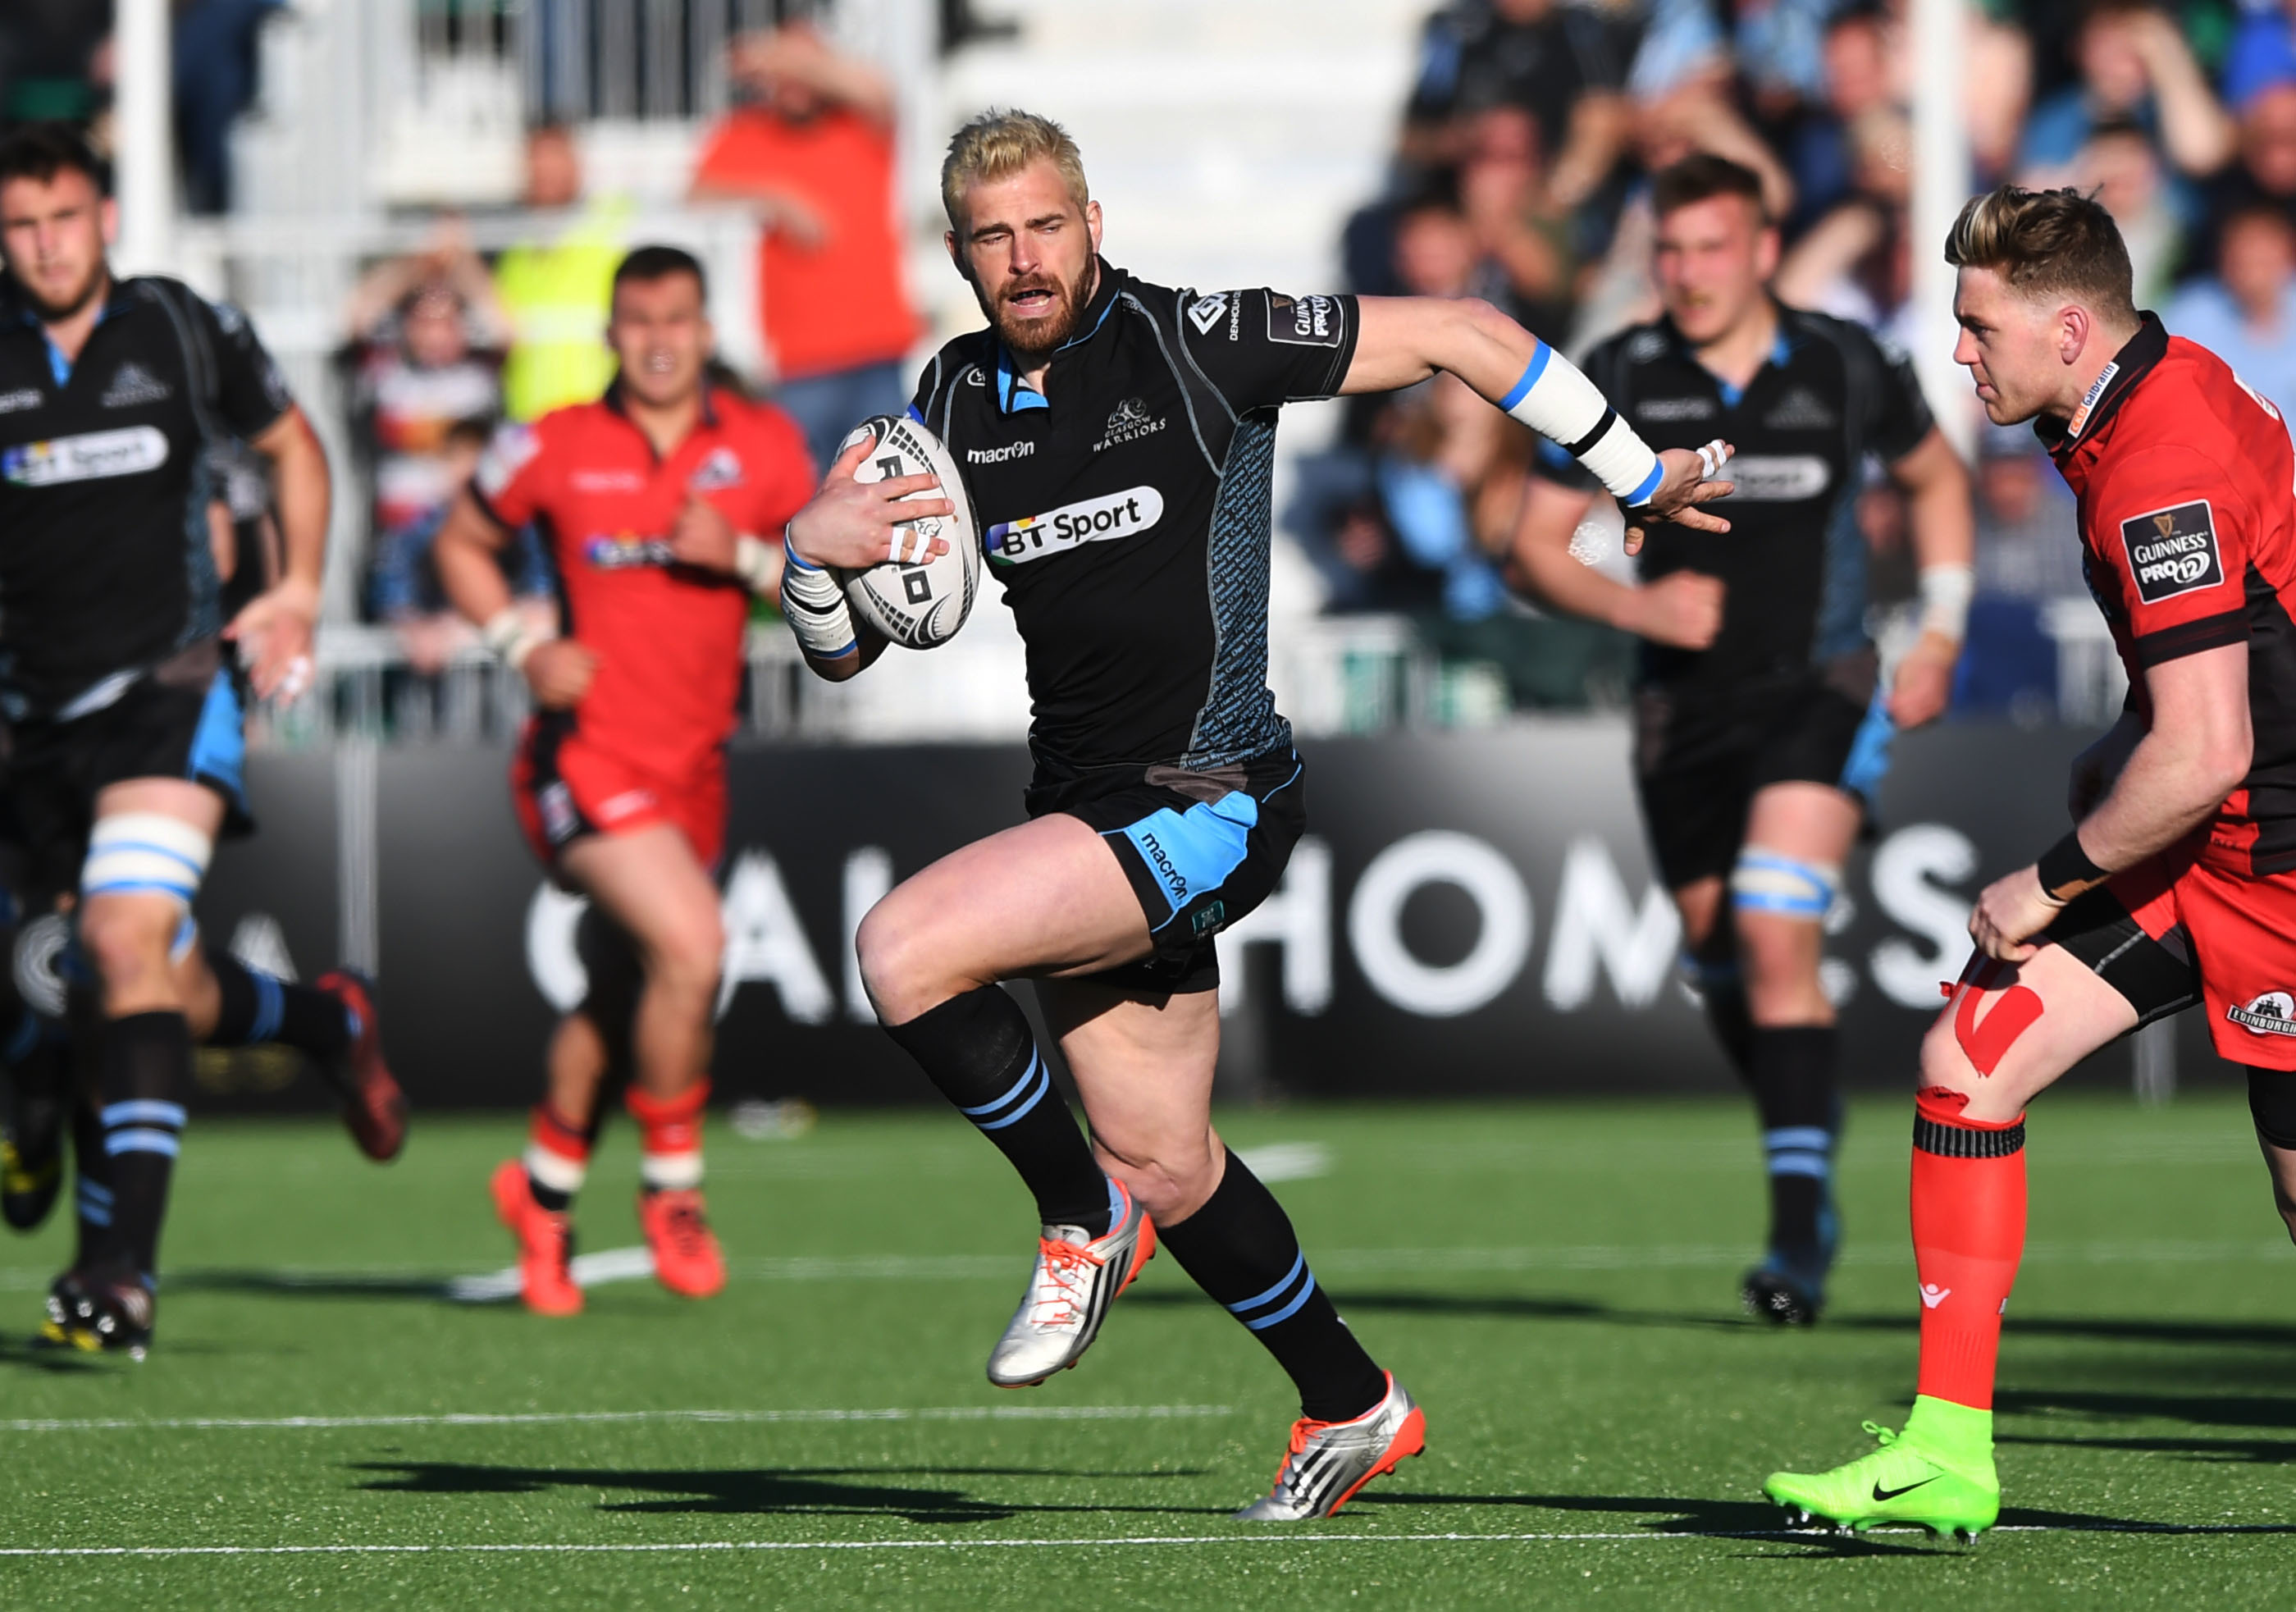 Sean Lamont at full pace in his final game at Scotstoun.